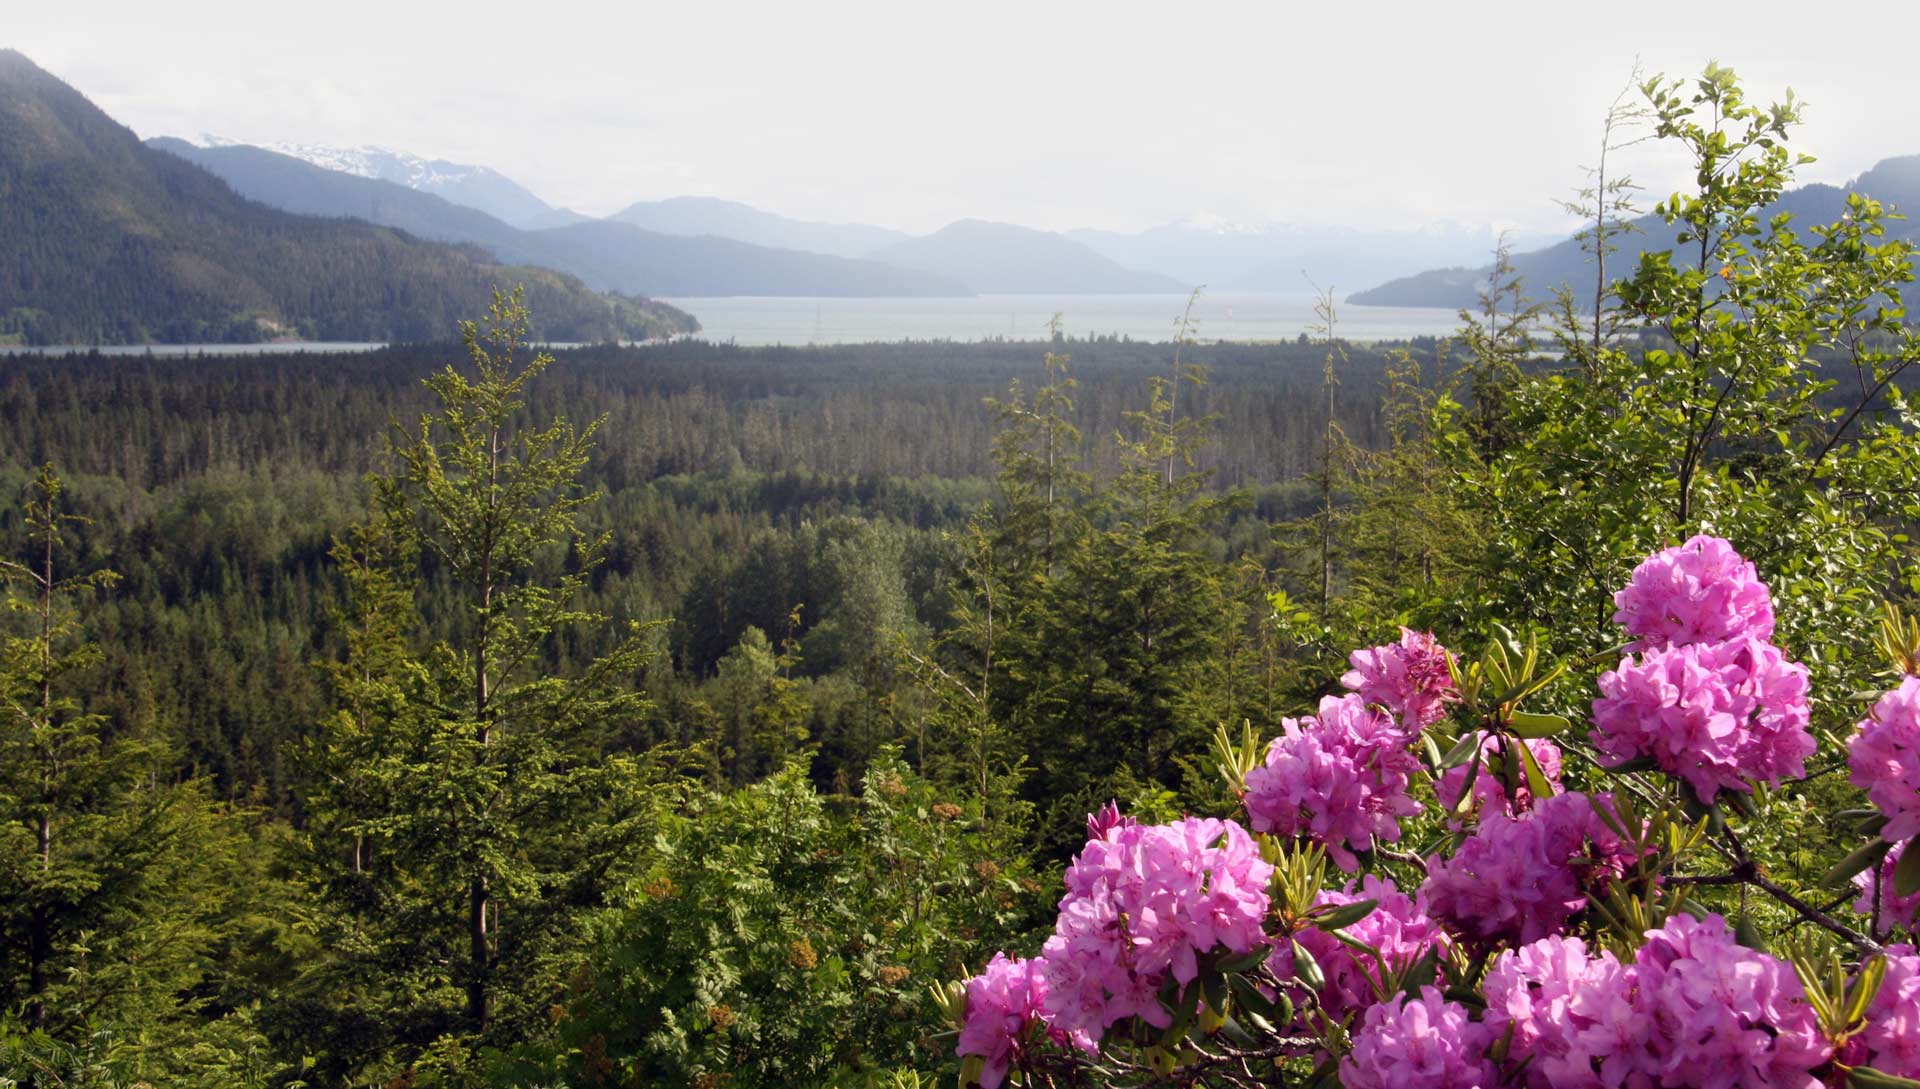 A view of the mountains and forest with a pink flower in the foreground.